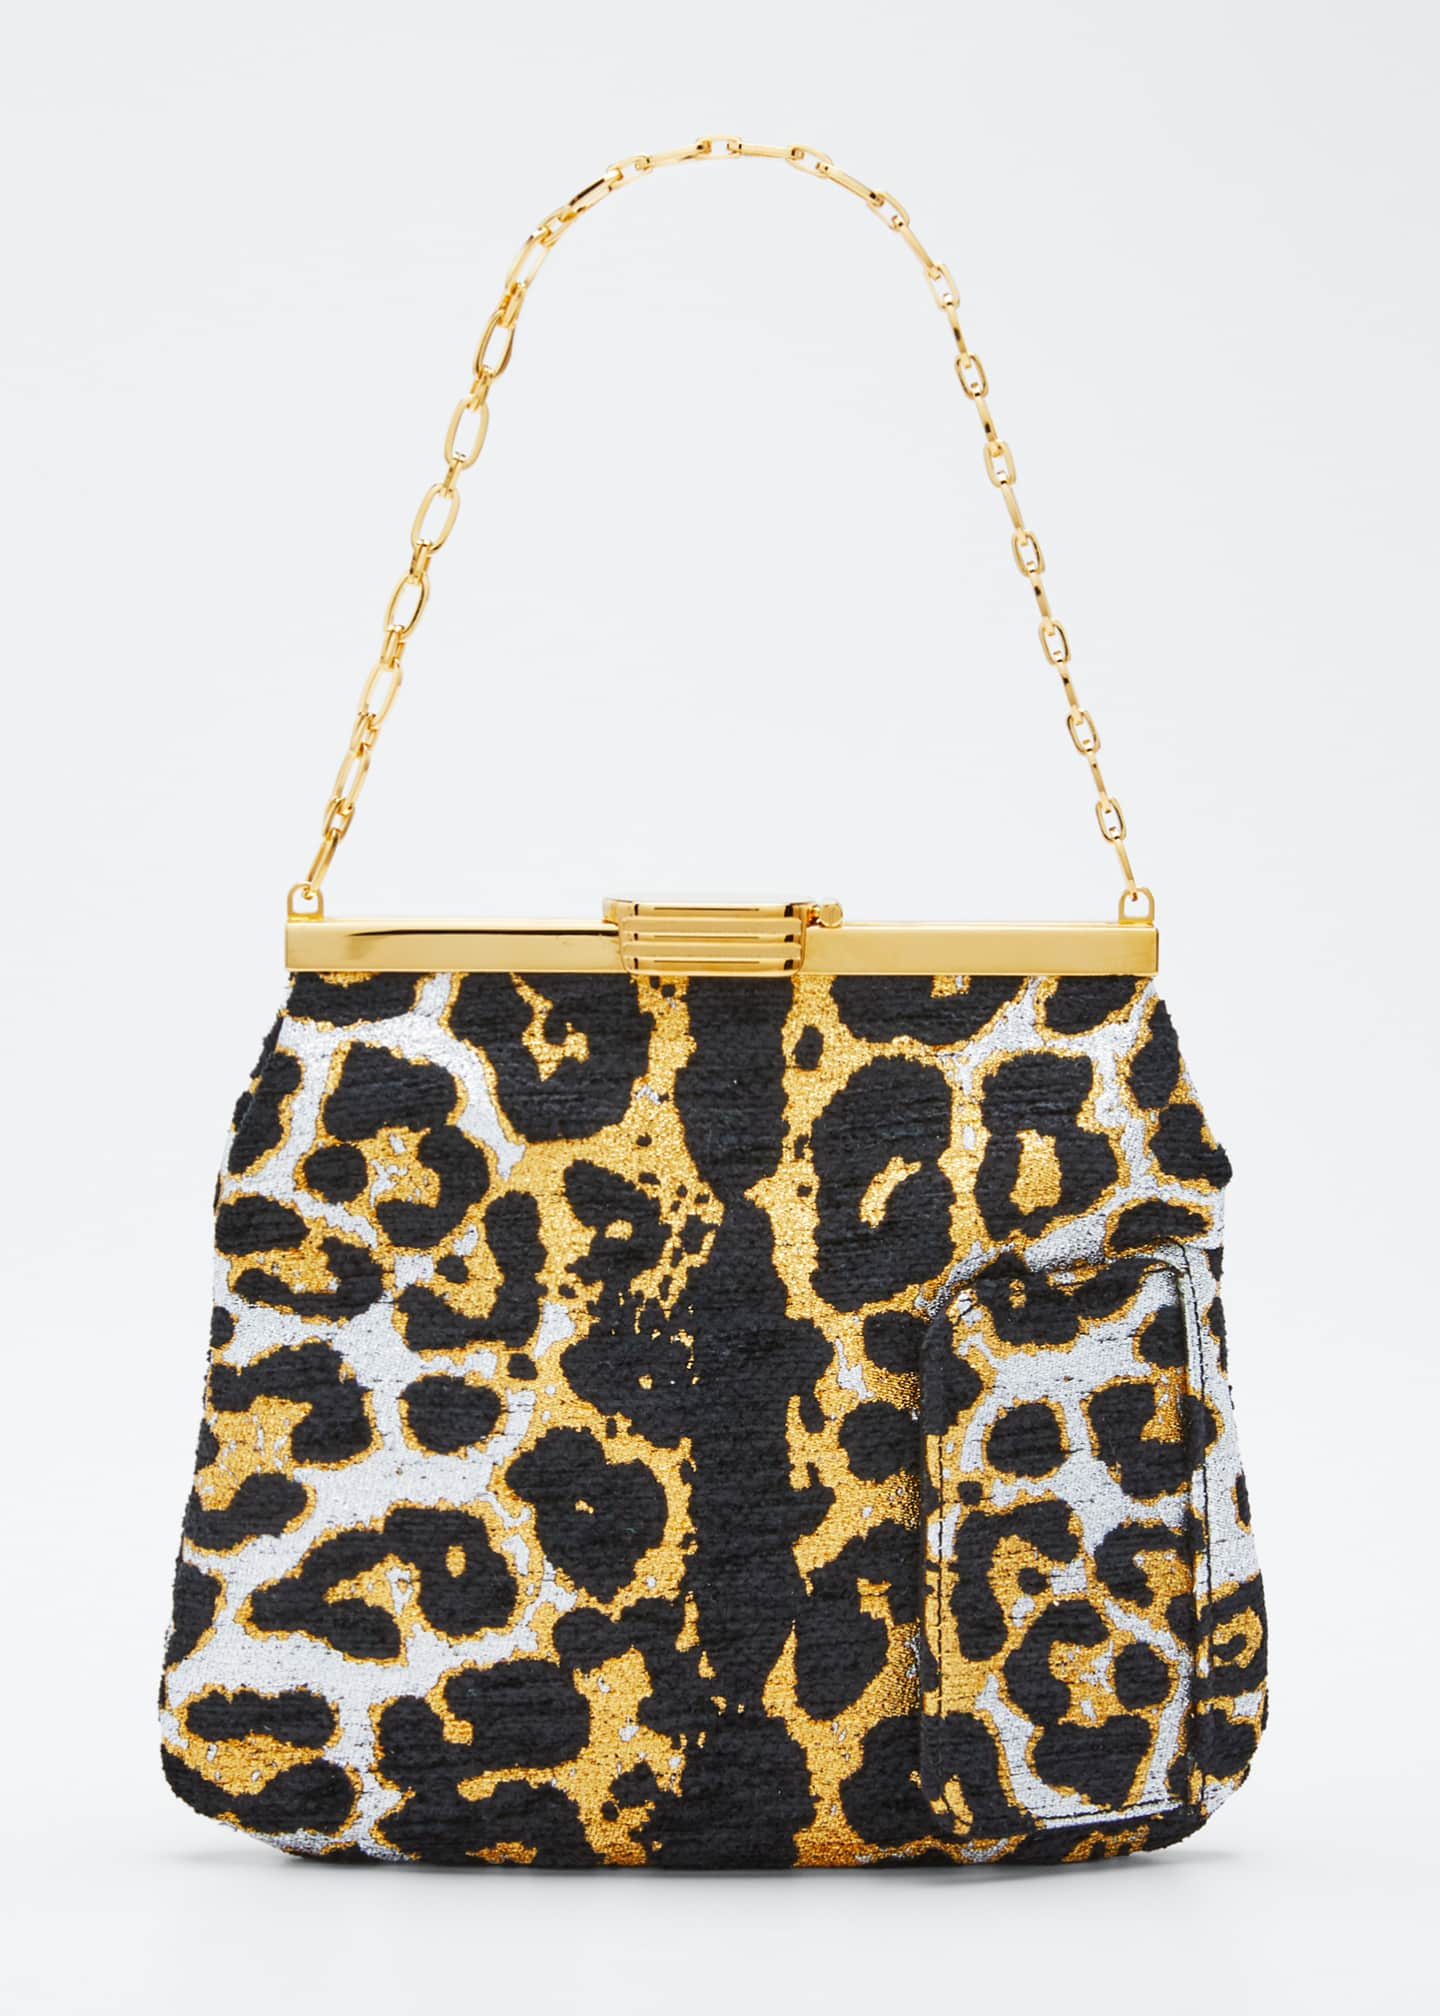 Bienen Davis Leopard Metallic Chenille Mini Clutch Bag